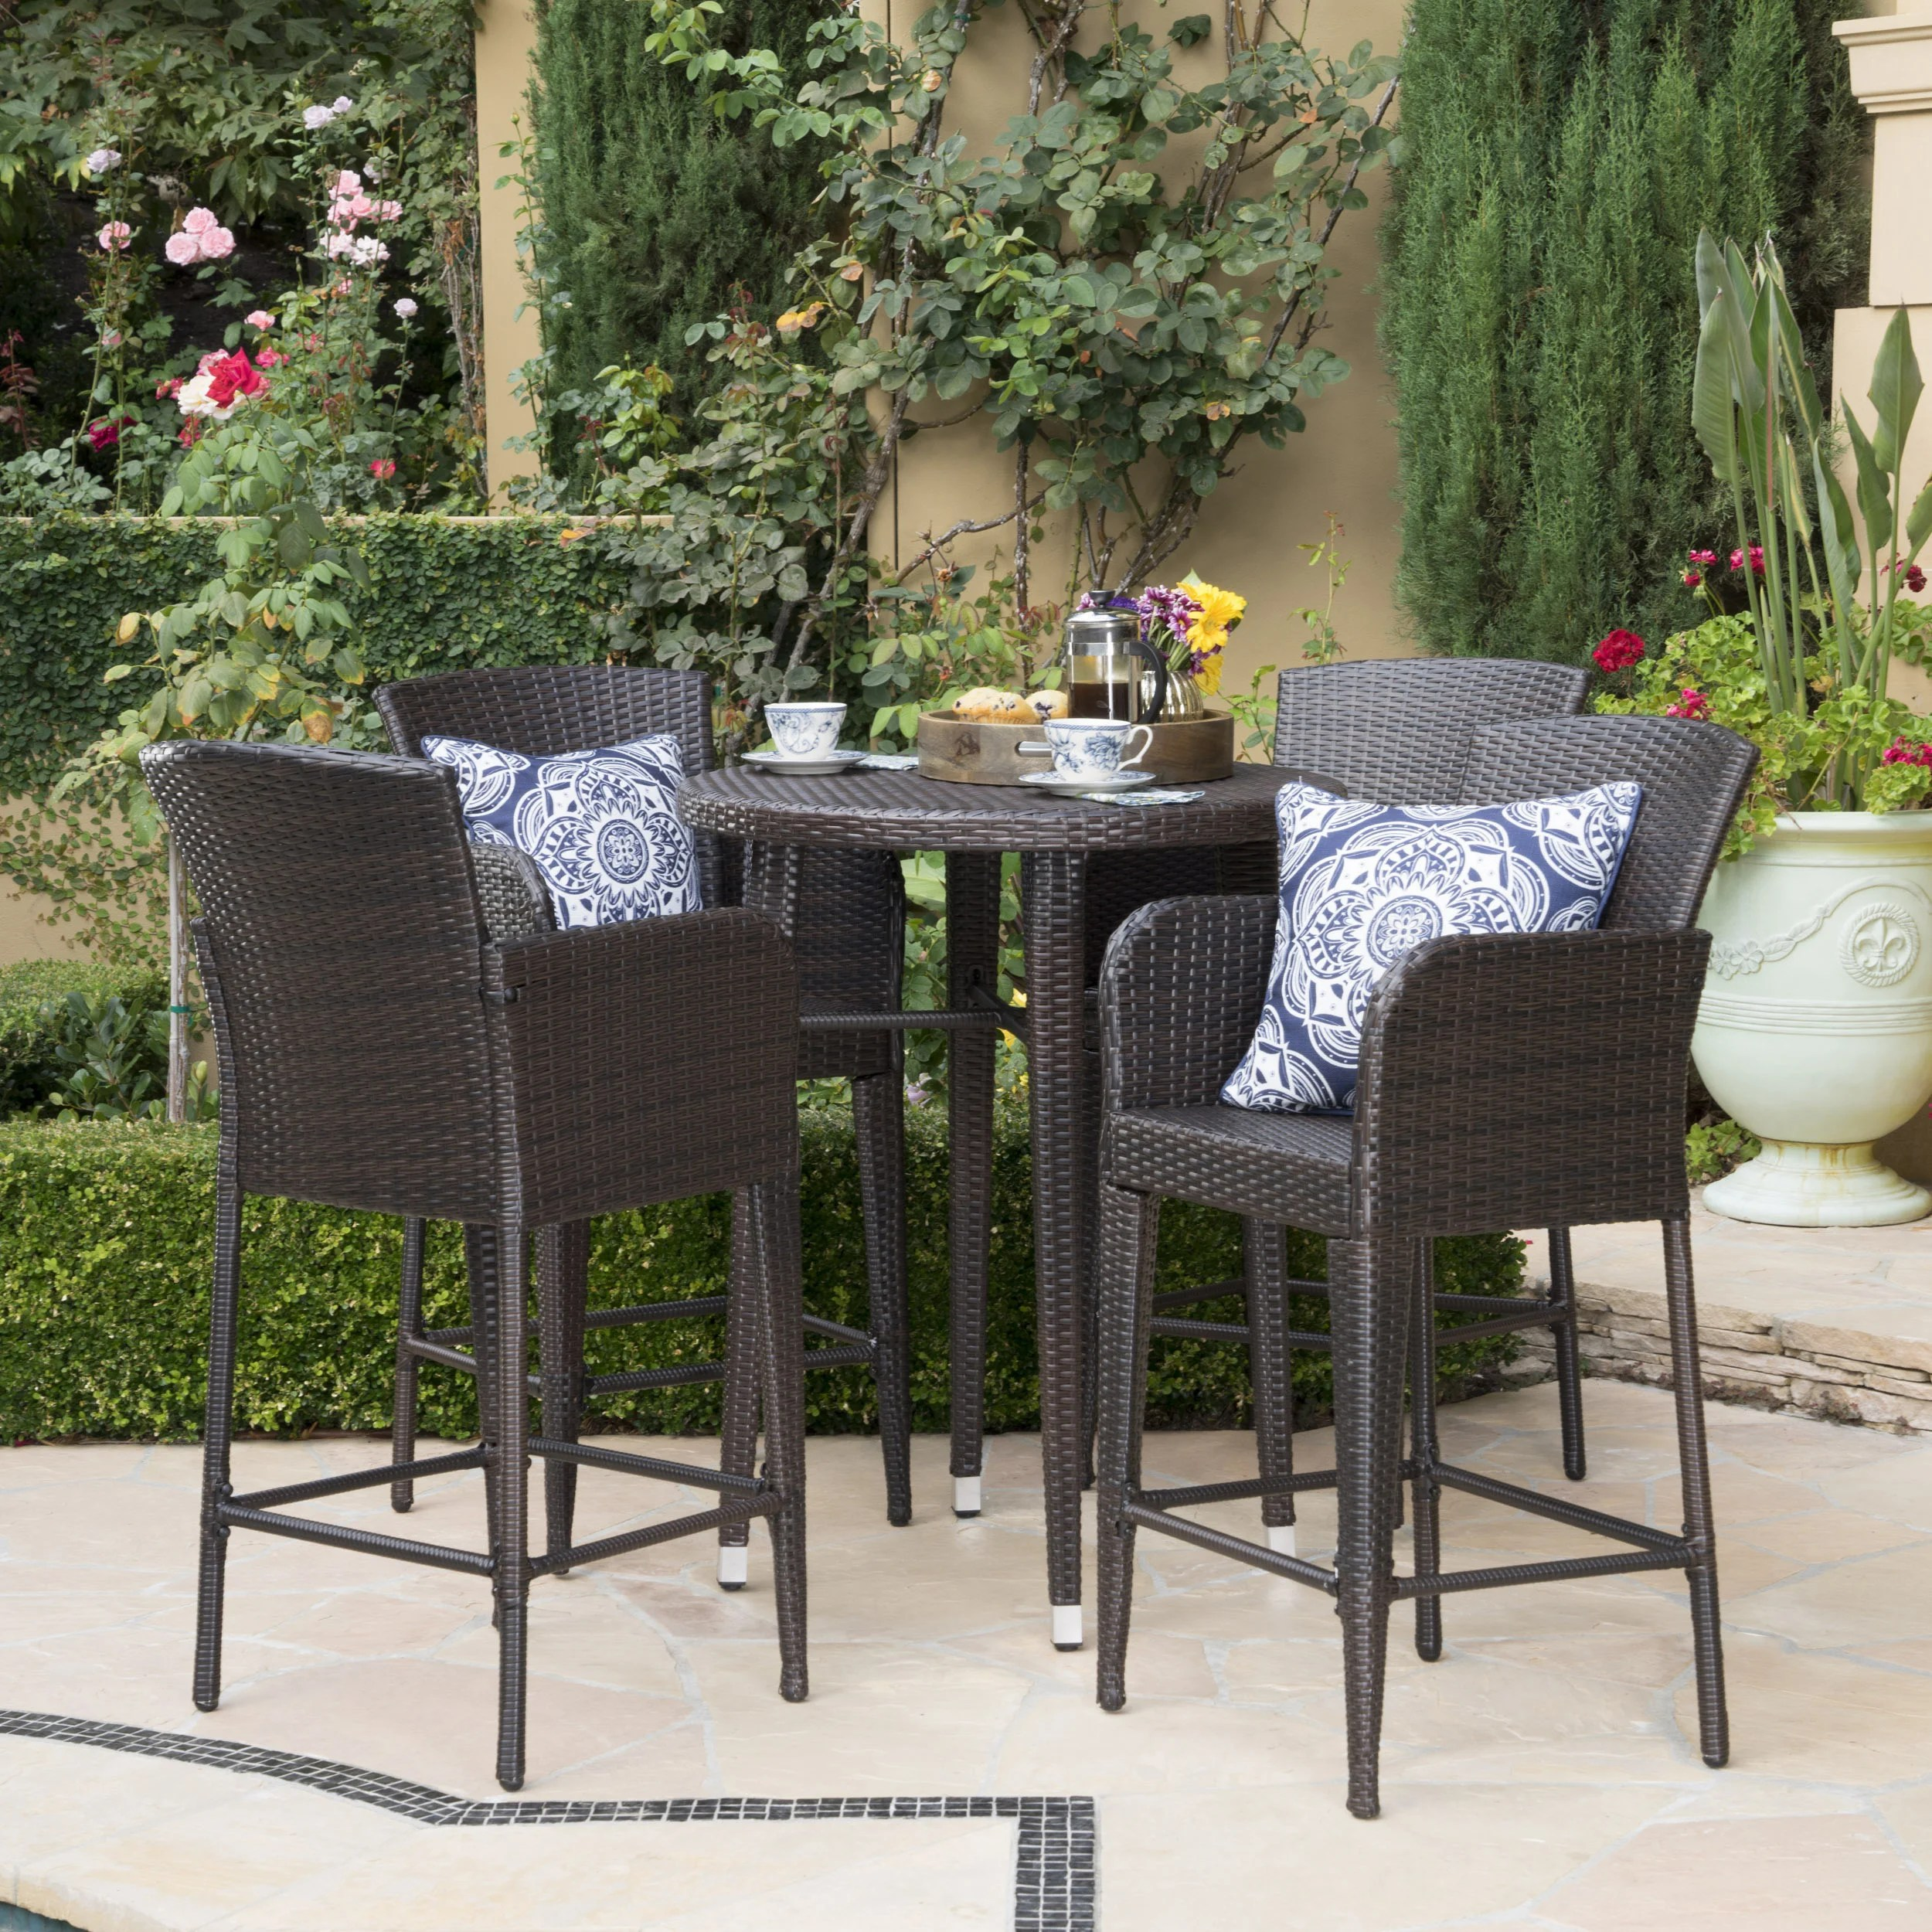 Patio Furniture Table And Chairs Buy Round Outdoor Dining Sets Online At Overstock Our Best Patio